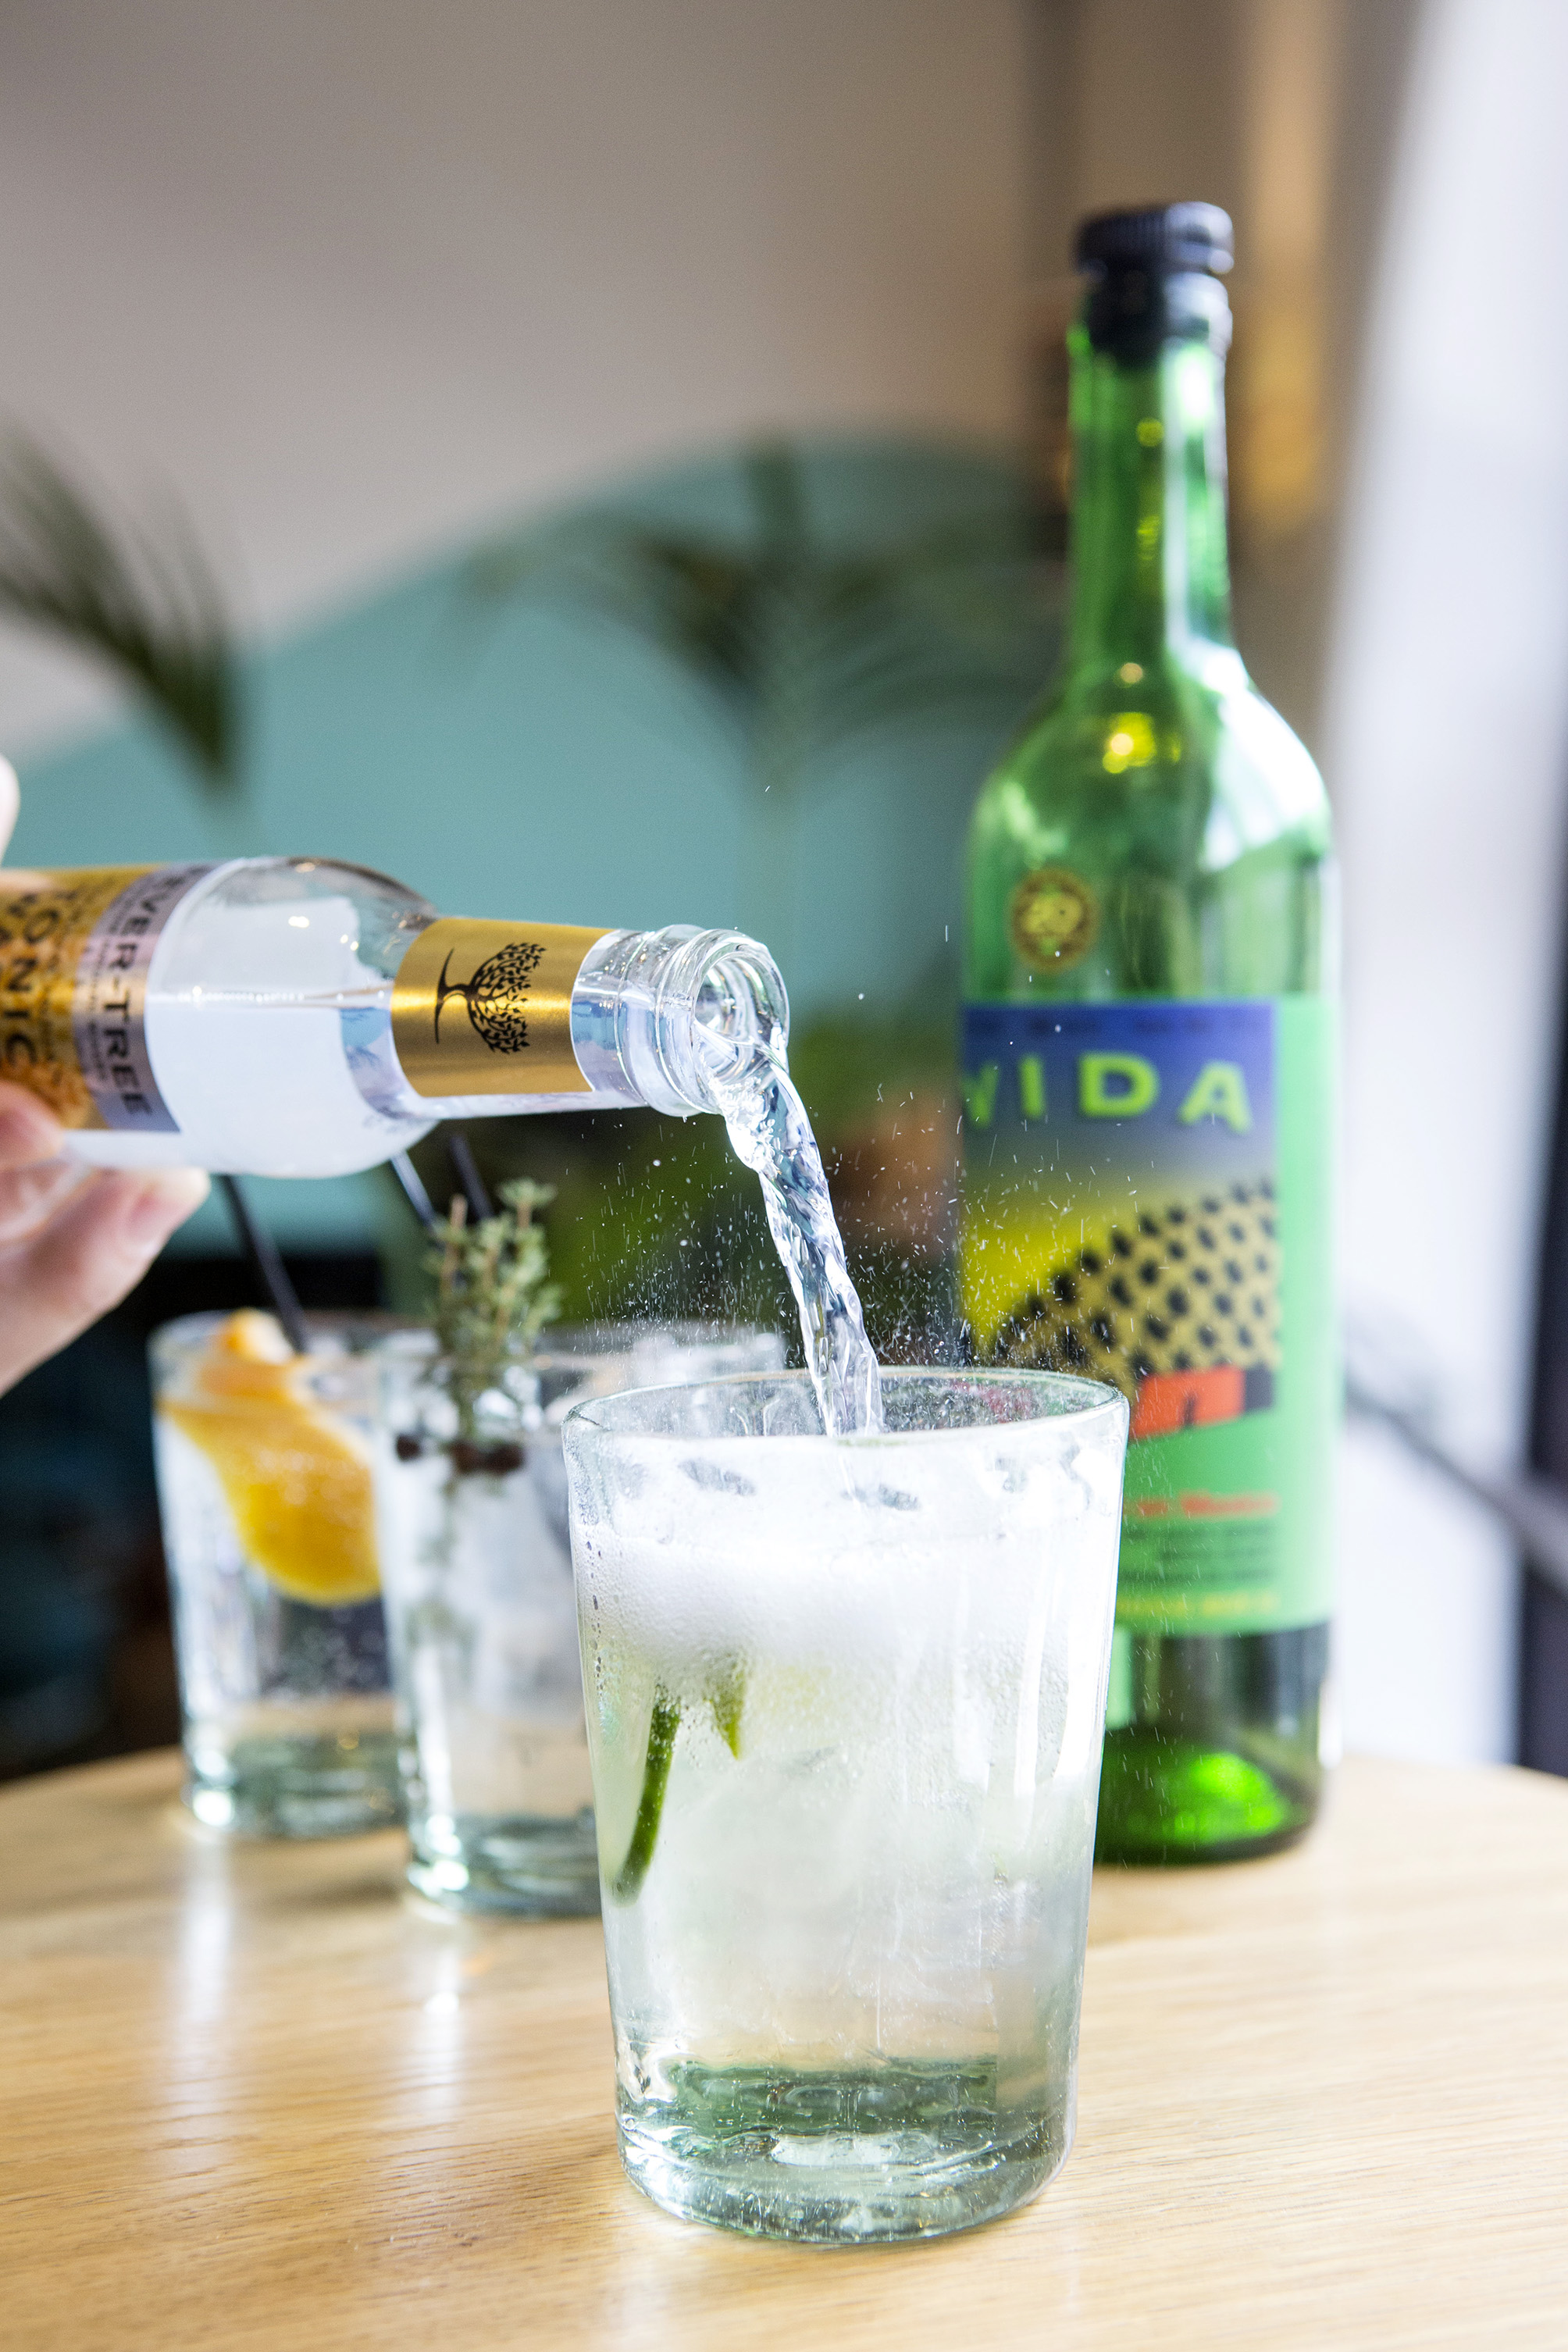 Fevertree tonic water and mescal